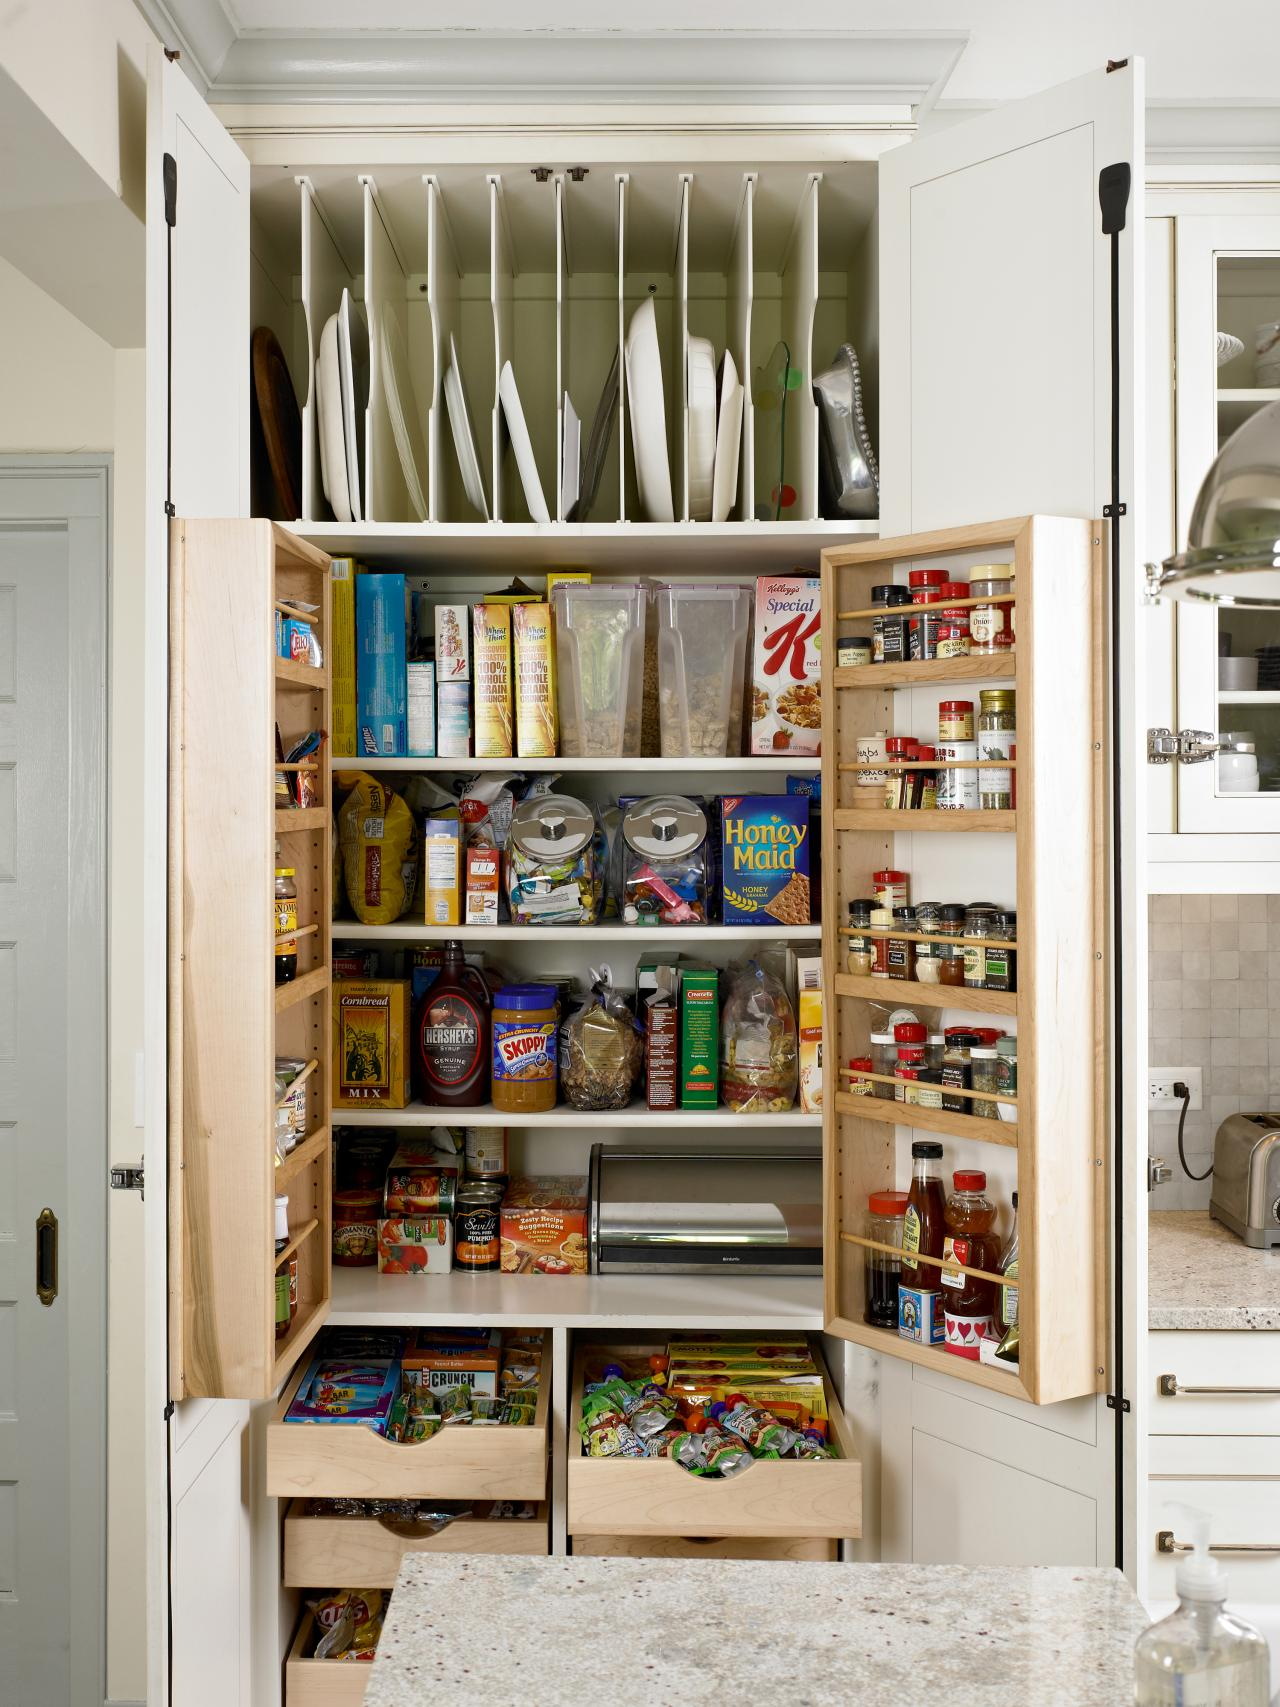 Kitchen Storage Design Mesmerizing Small Kitchen Storage Ideas Pictures & Tips From Hgtv  Hgtv Inspiration